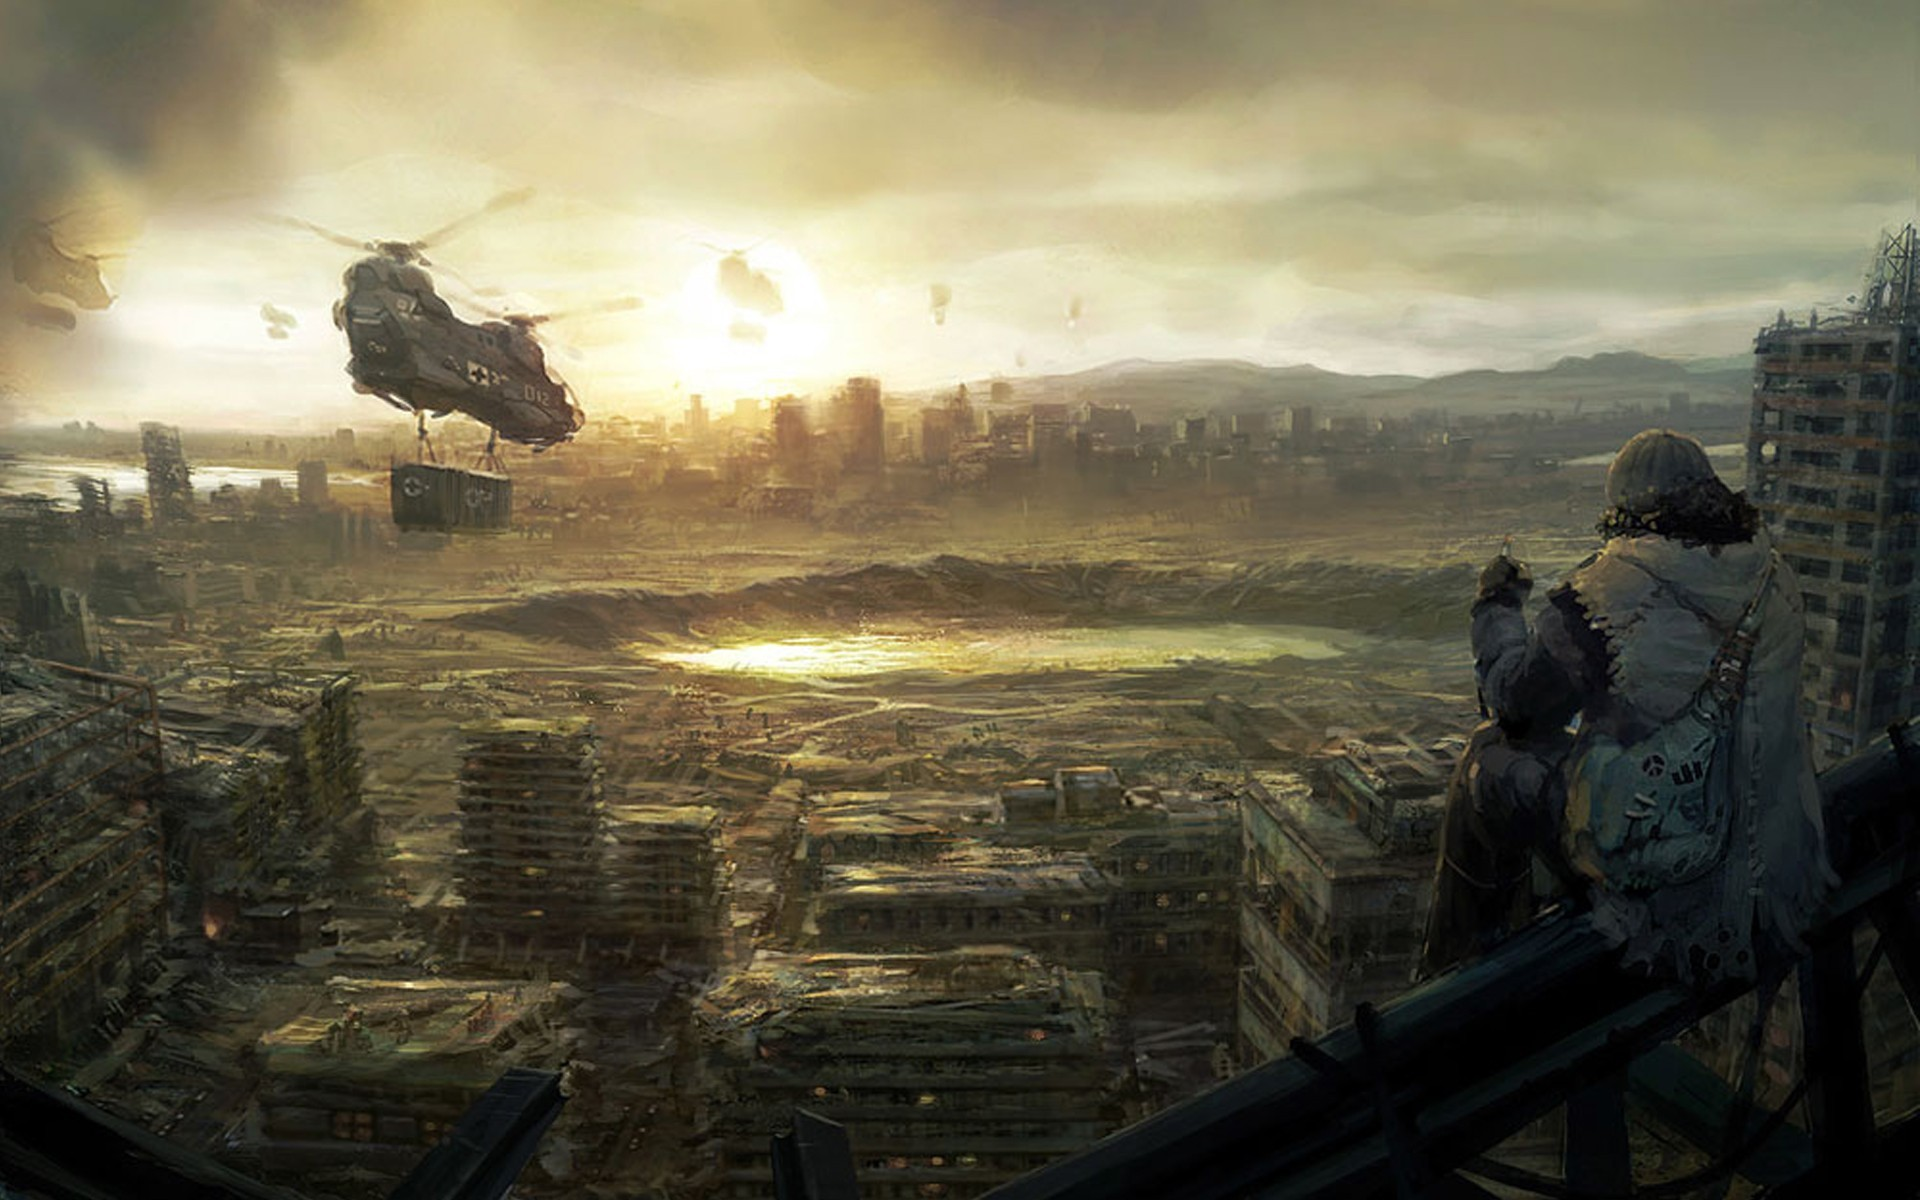 15 best Post Apocalyptic References images on Pinterest | Post apocalypse,  Concept art and Apocalypse art